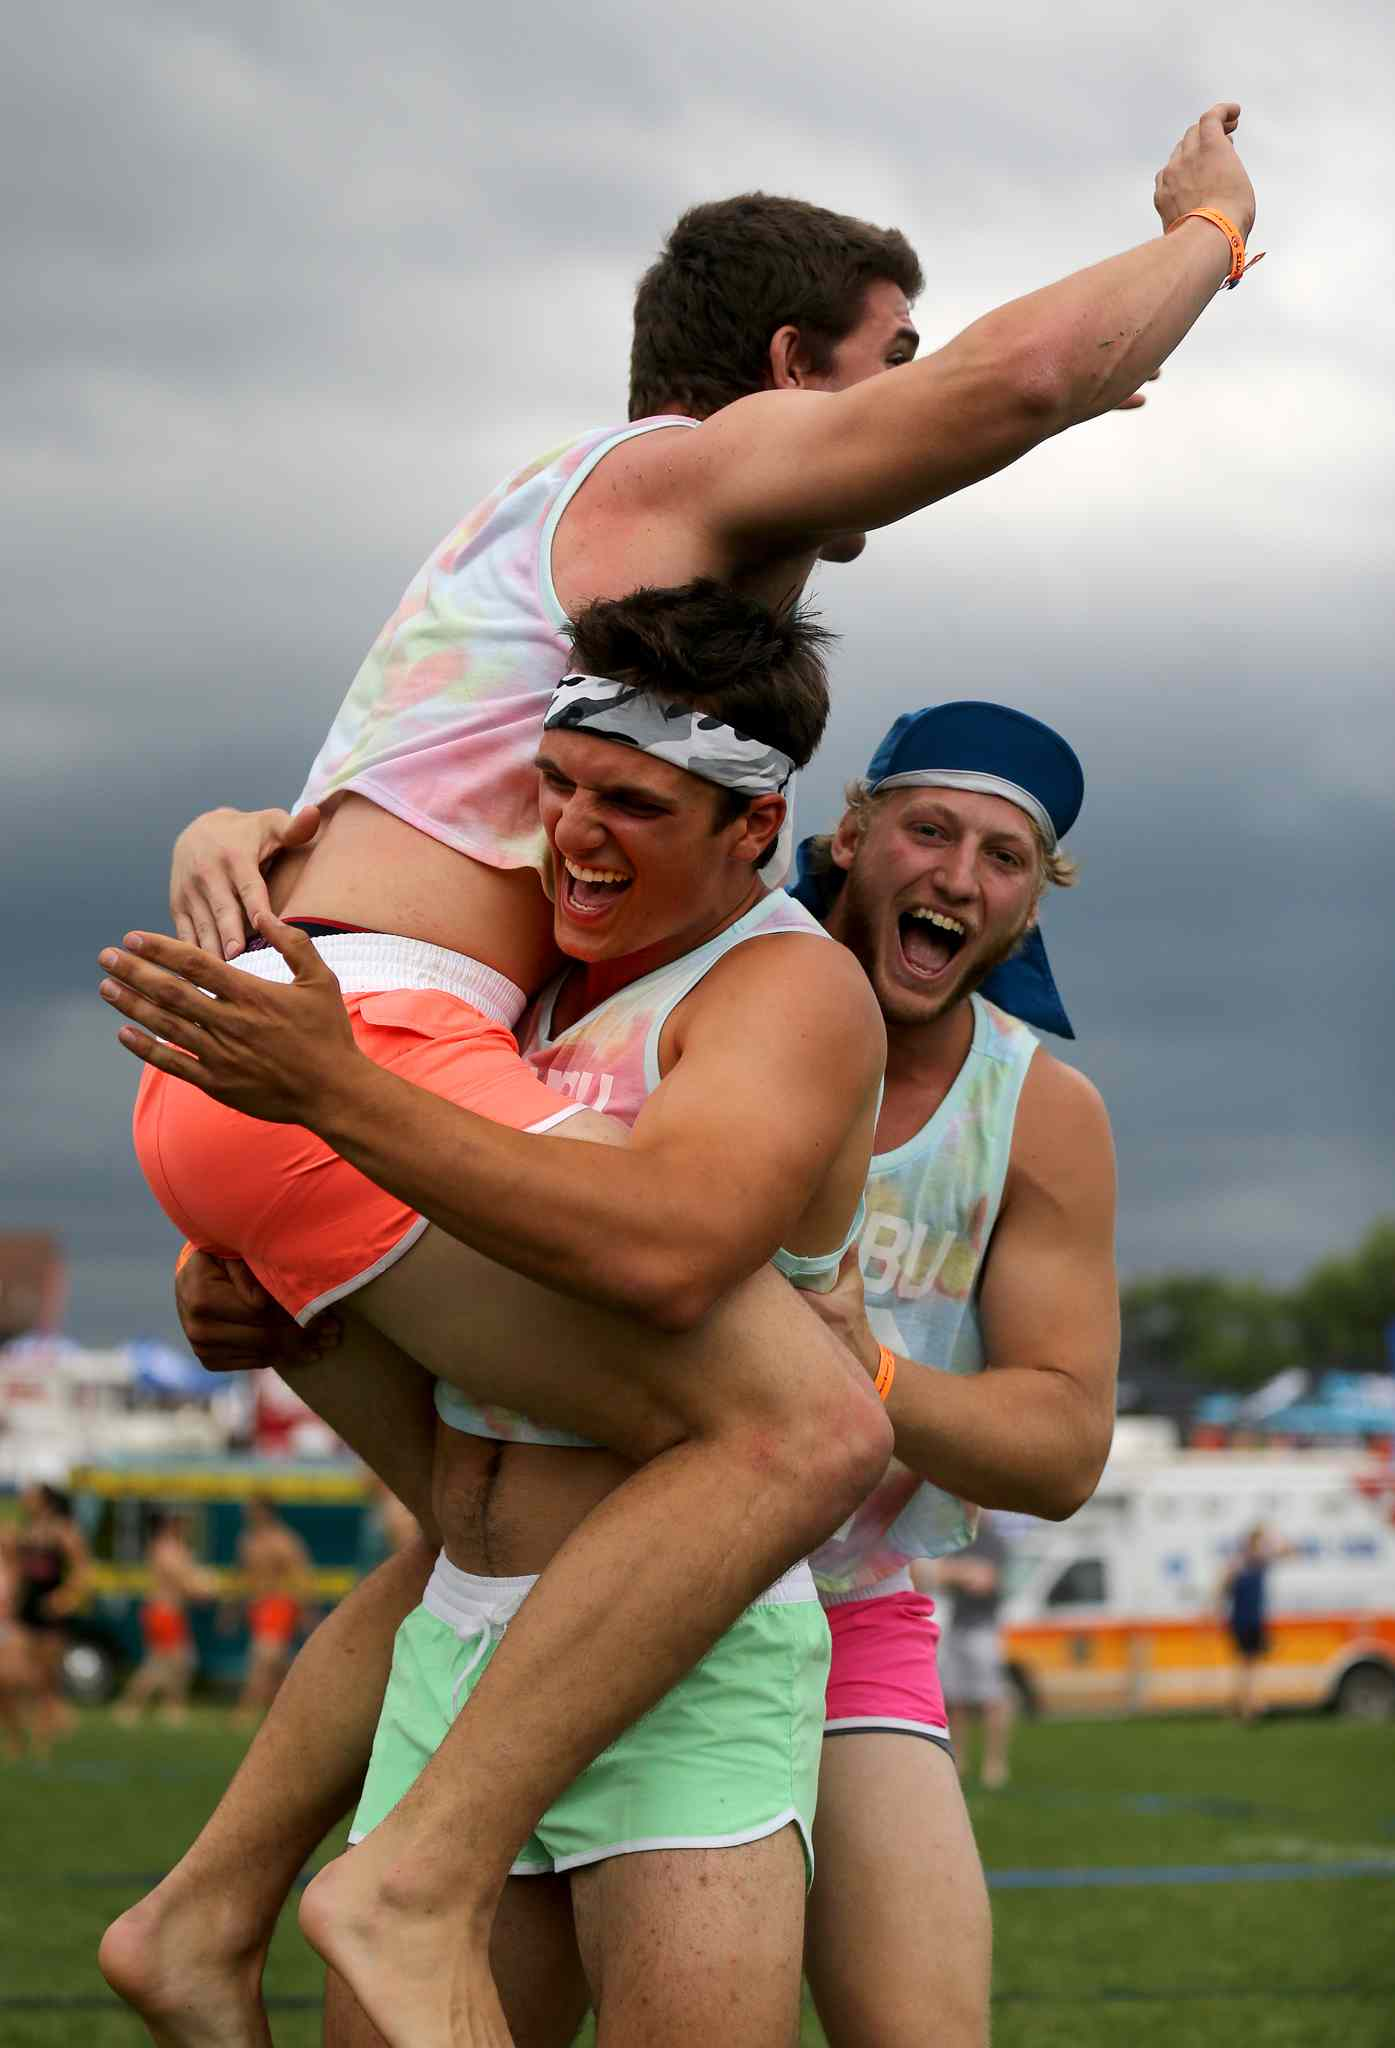 Three members of Poppin Volley's celebrate a point at the Super-Spike volleyball tournament at Maple Grove Rugby Park, Friday, July 18, 2014.